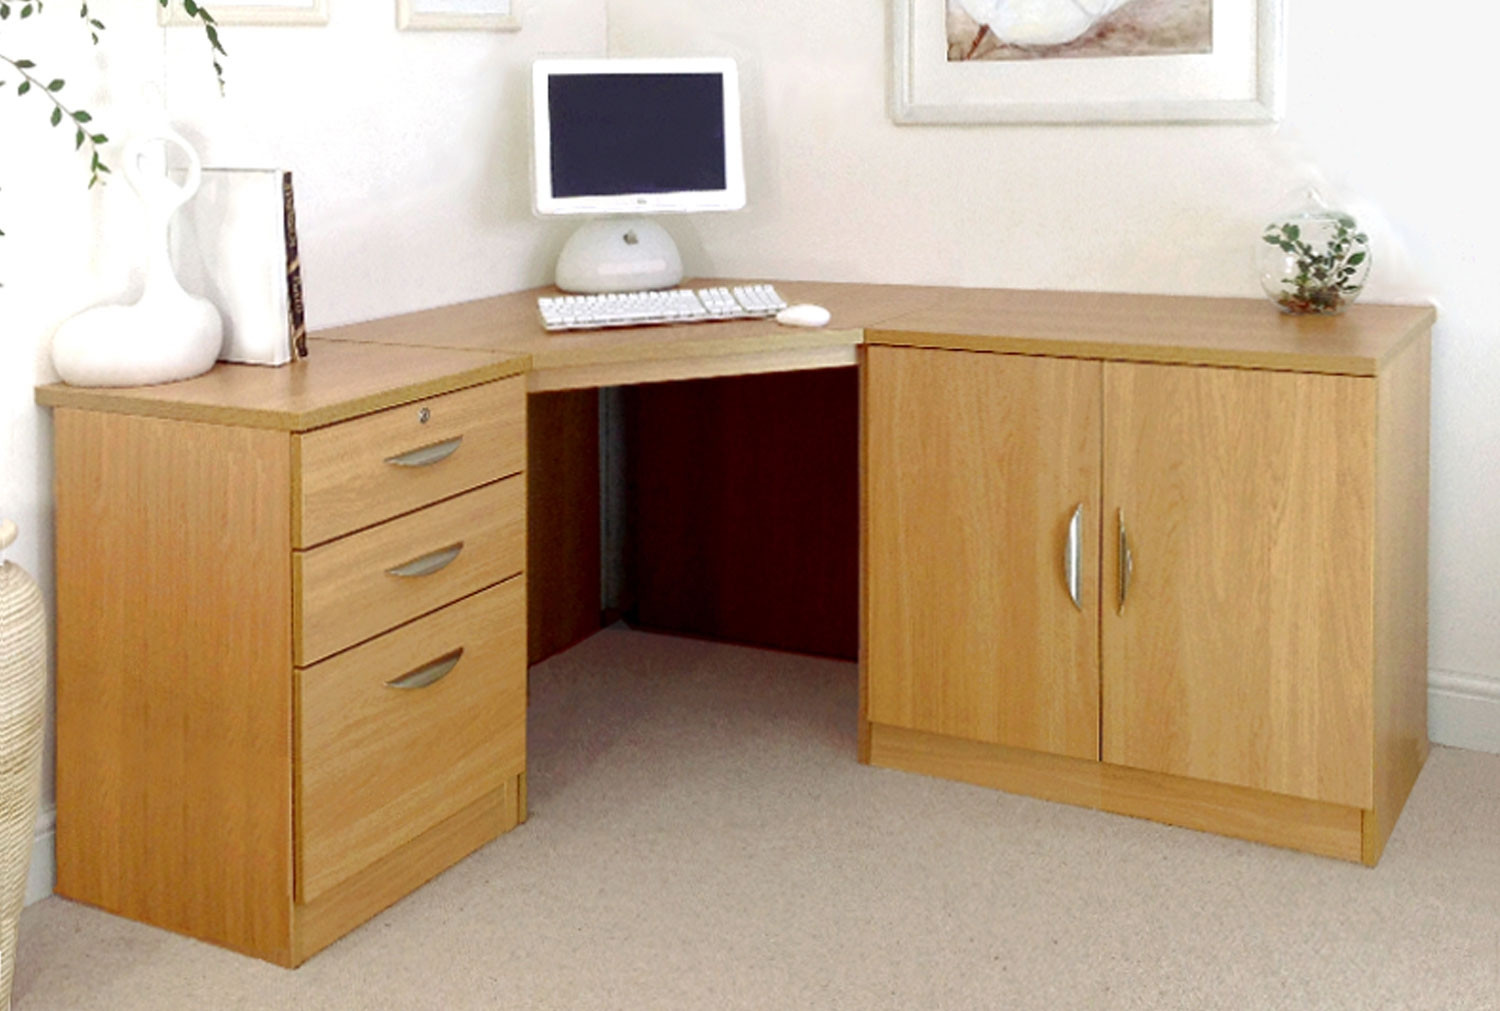 Small Office Corner Desk Set With 3 Drawers Cupboard Classic Oak Furniture At Work